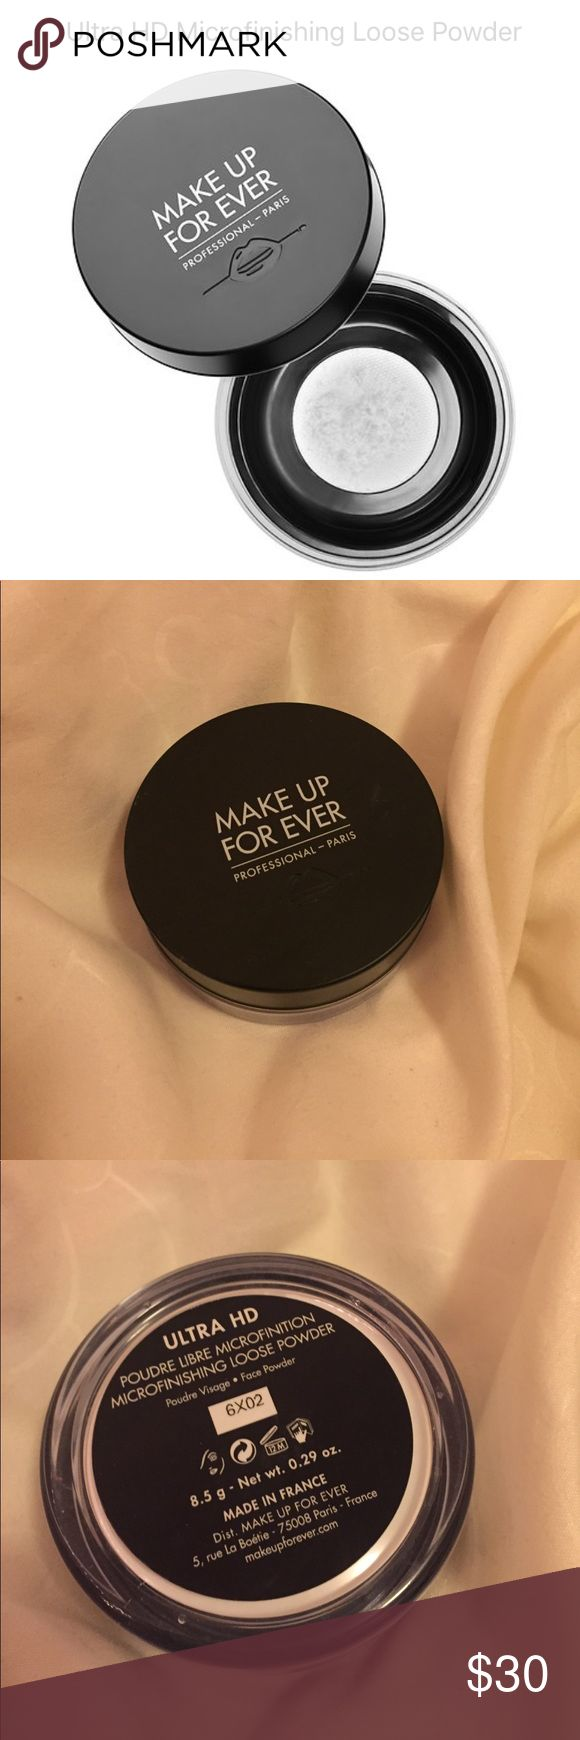 MAKE UP FOR EVER Ultra HD loose powder Used only once or twice, still has 99% of product left. Perfect for blurring and perfecting your makeup! Photo friendly and pore minimizing. Box not included! FAST SHIPPING, if bought will ship same day or following day! Makeup Forever Makeup Face Powder